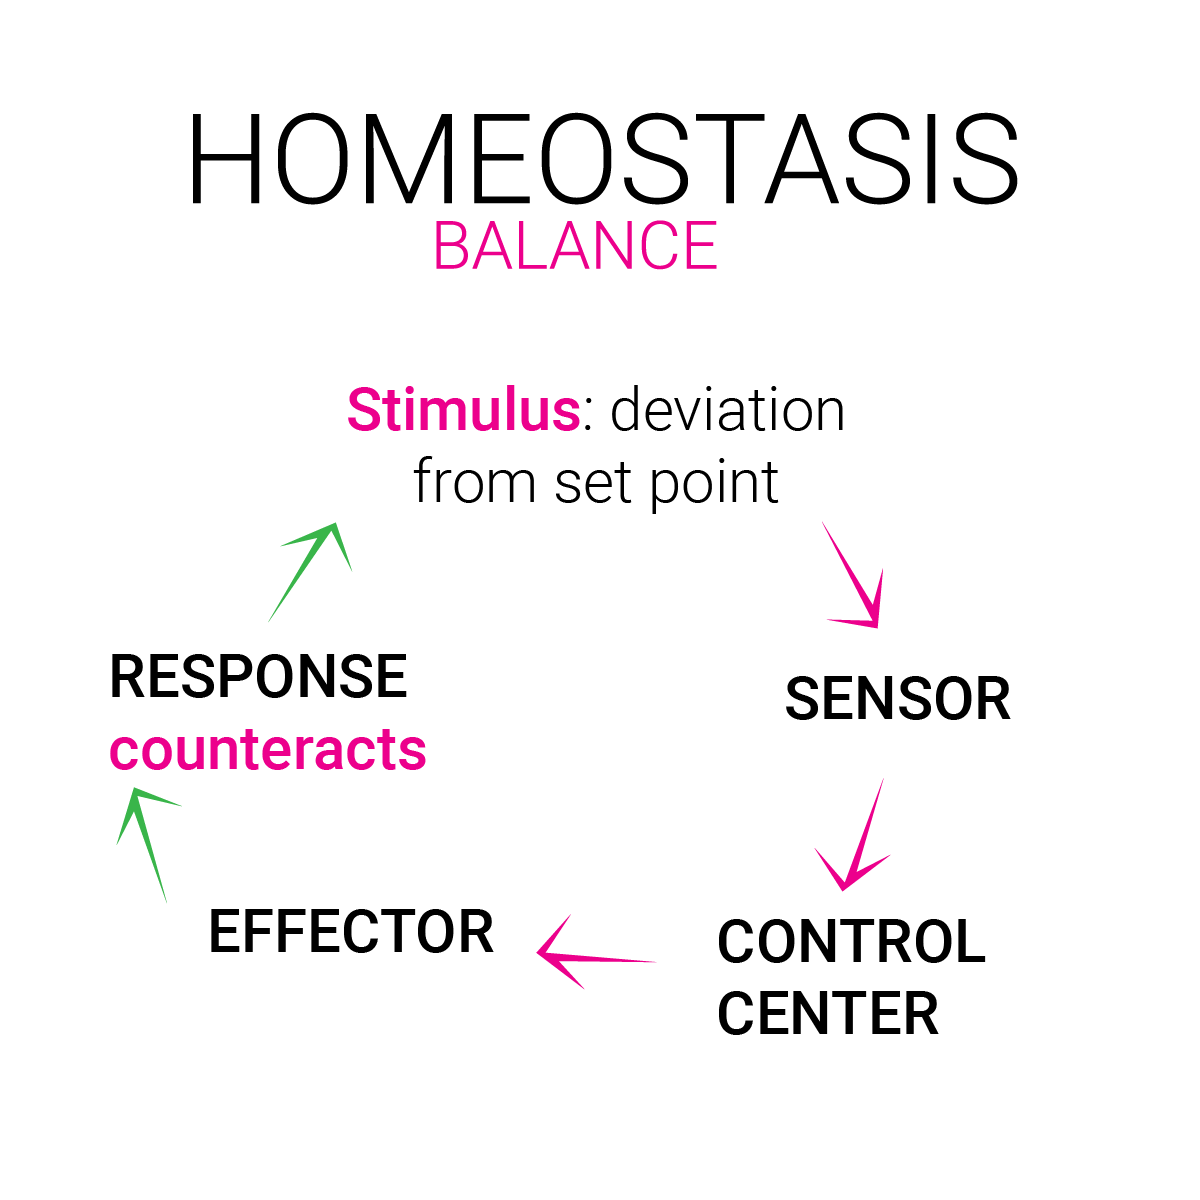 homeostasis menopause cannabis regulation balance